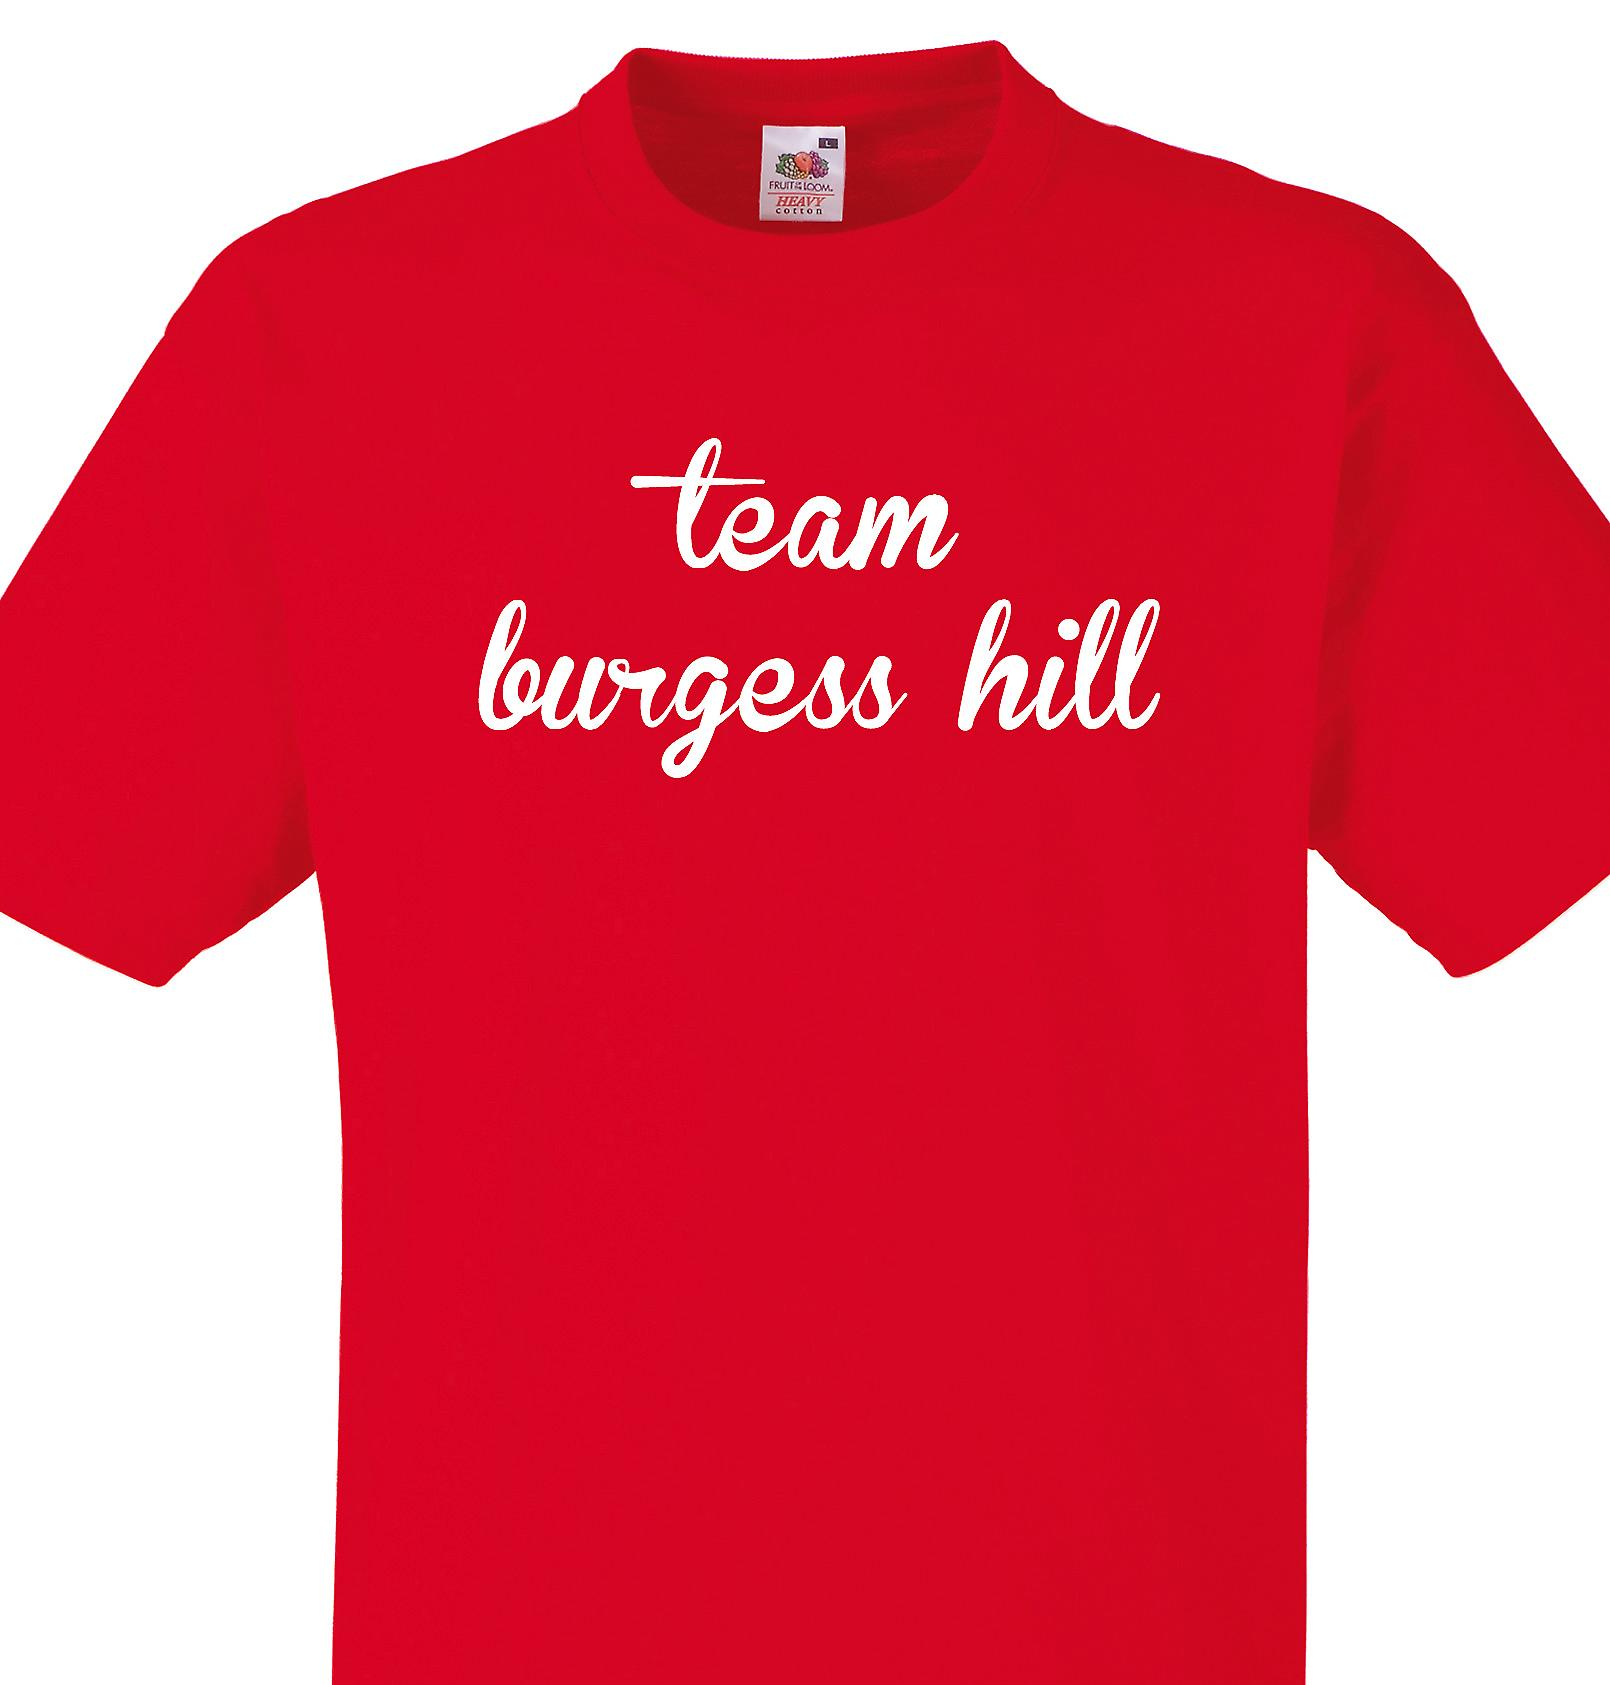 Team Burgess hill Red T shirt